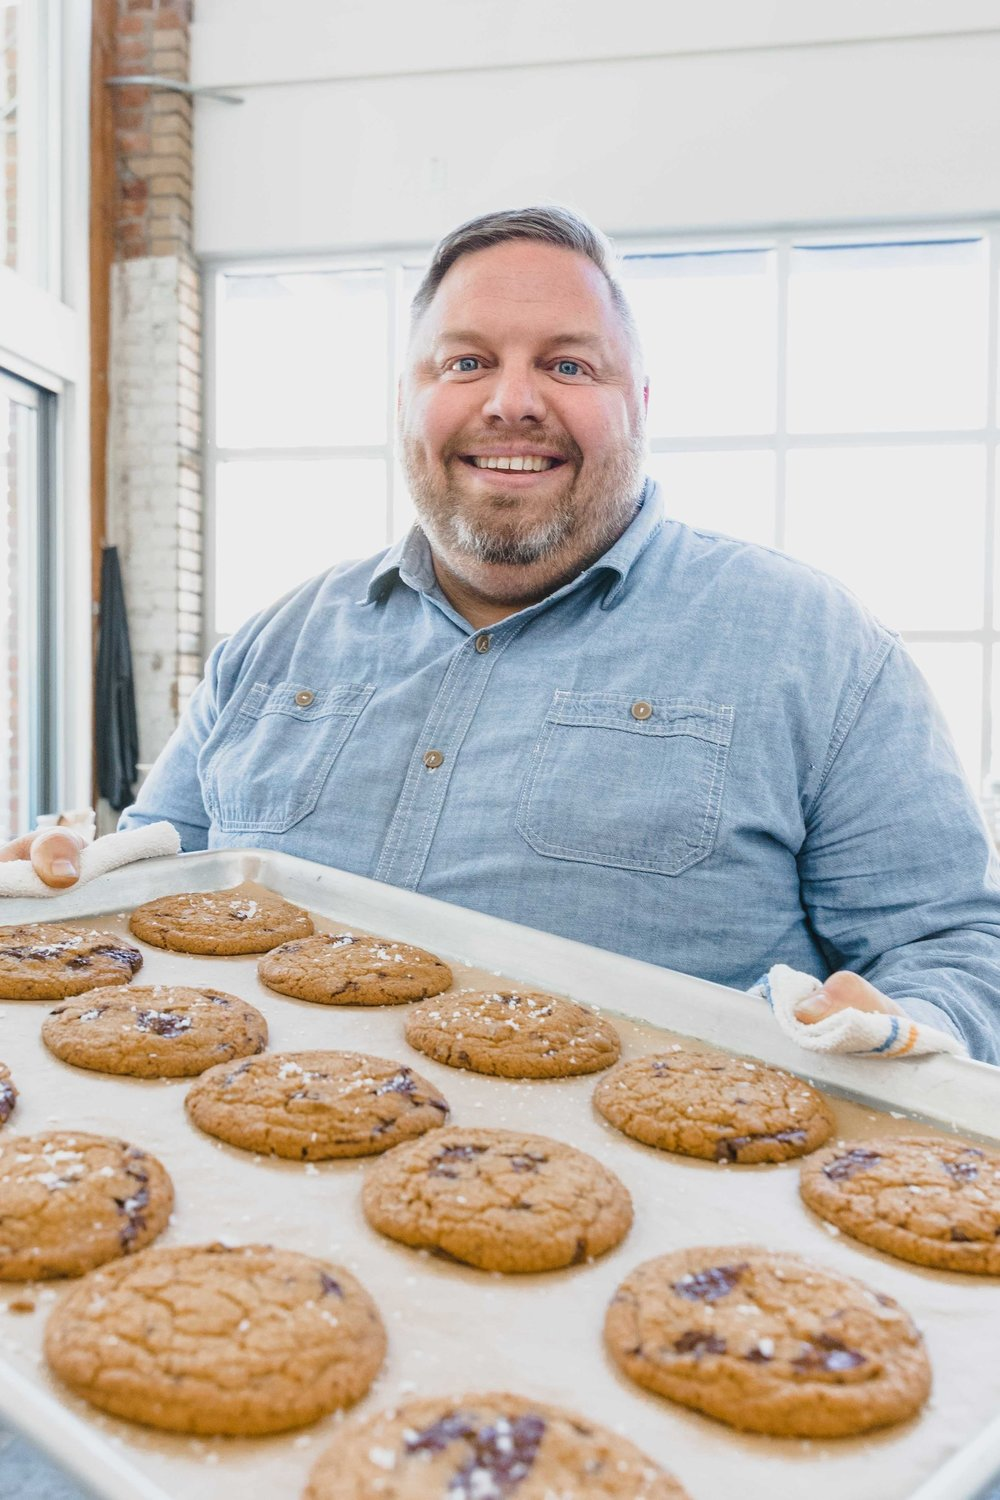 Culinary Operations Manager David Hurt with a fresh-baked tray of our Chocolate Chip Cookies